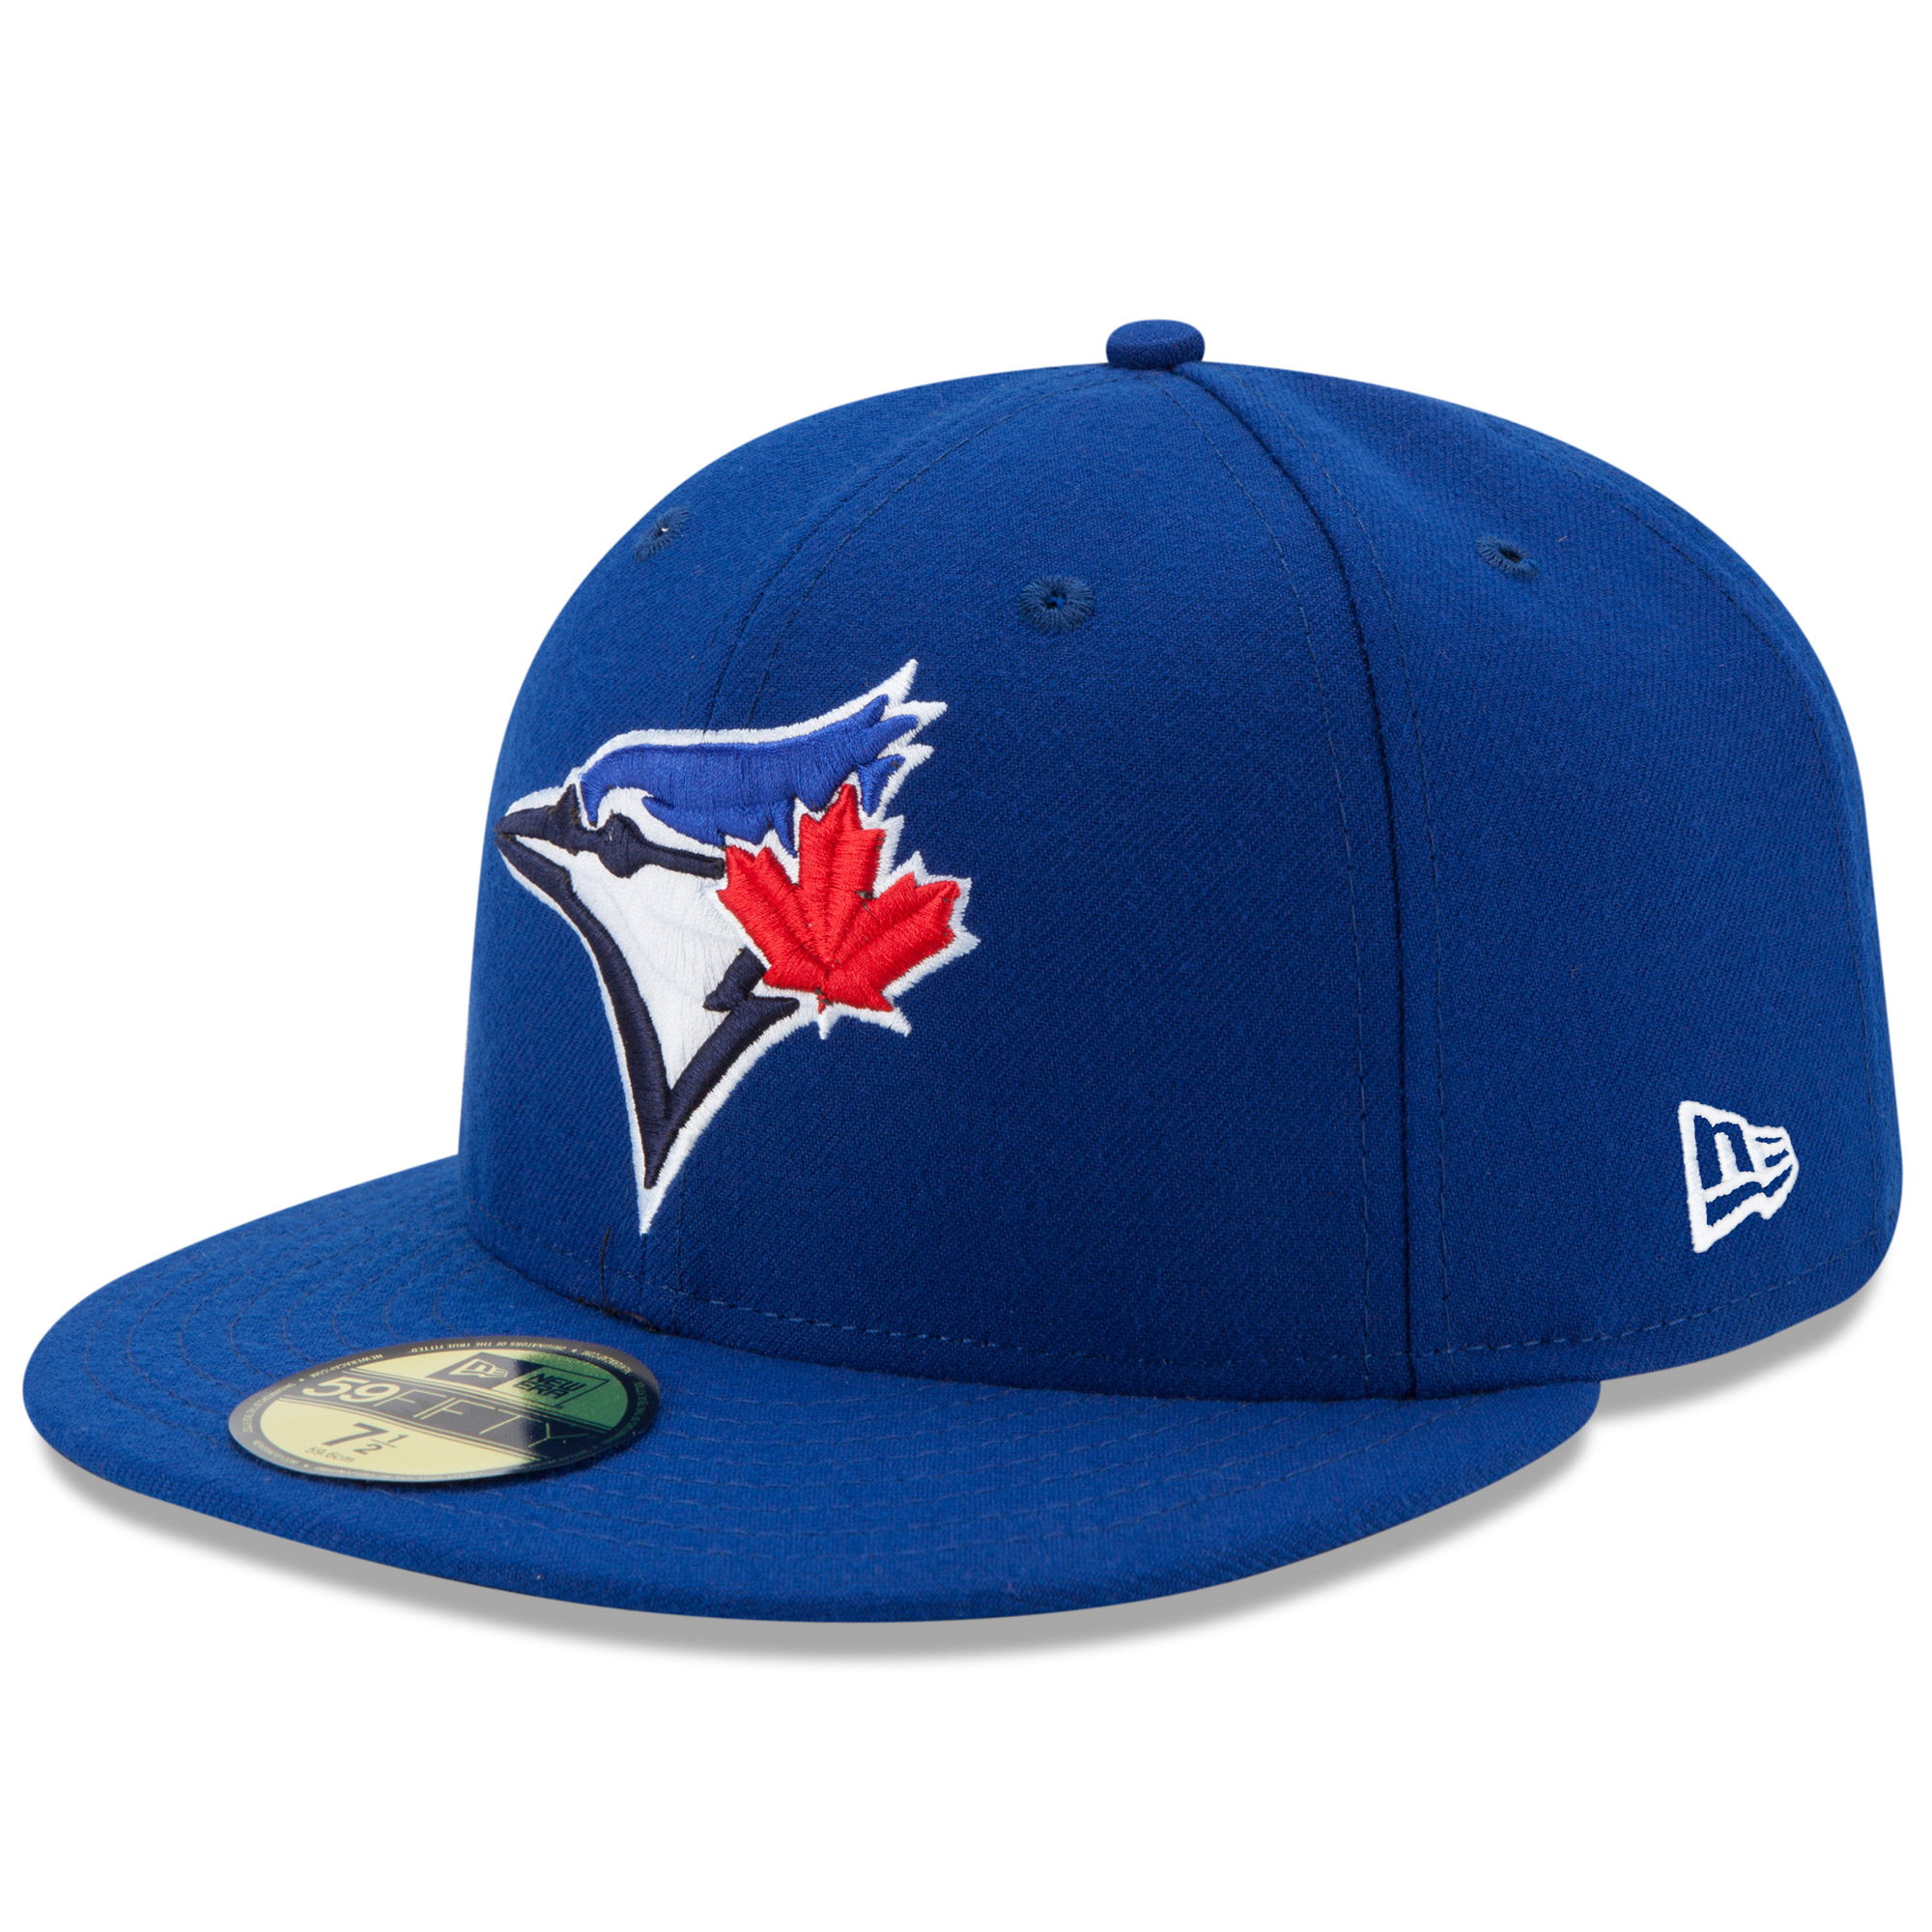 Toronto Blue Jays New Era Authentic Collection On Field 59FIFTY Fitted Hat - Royal